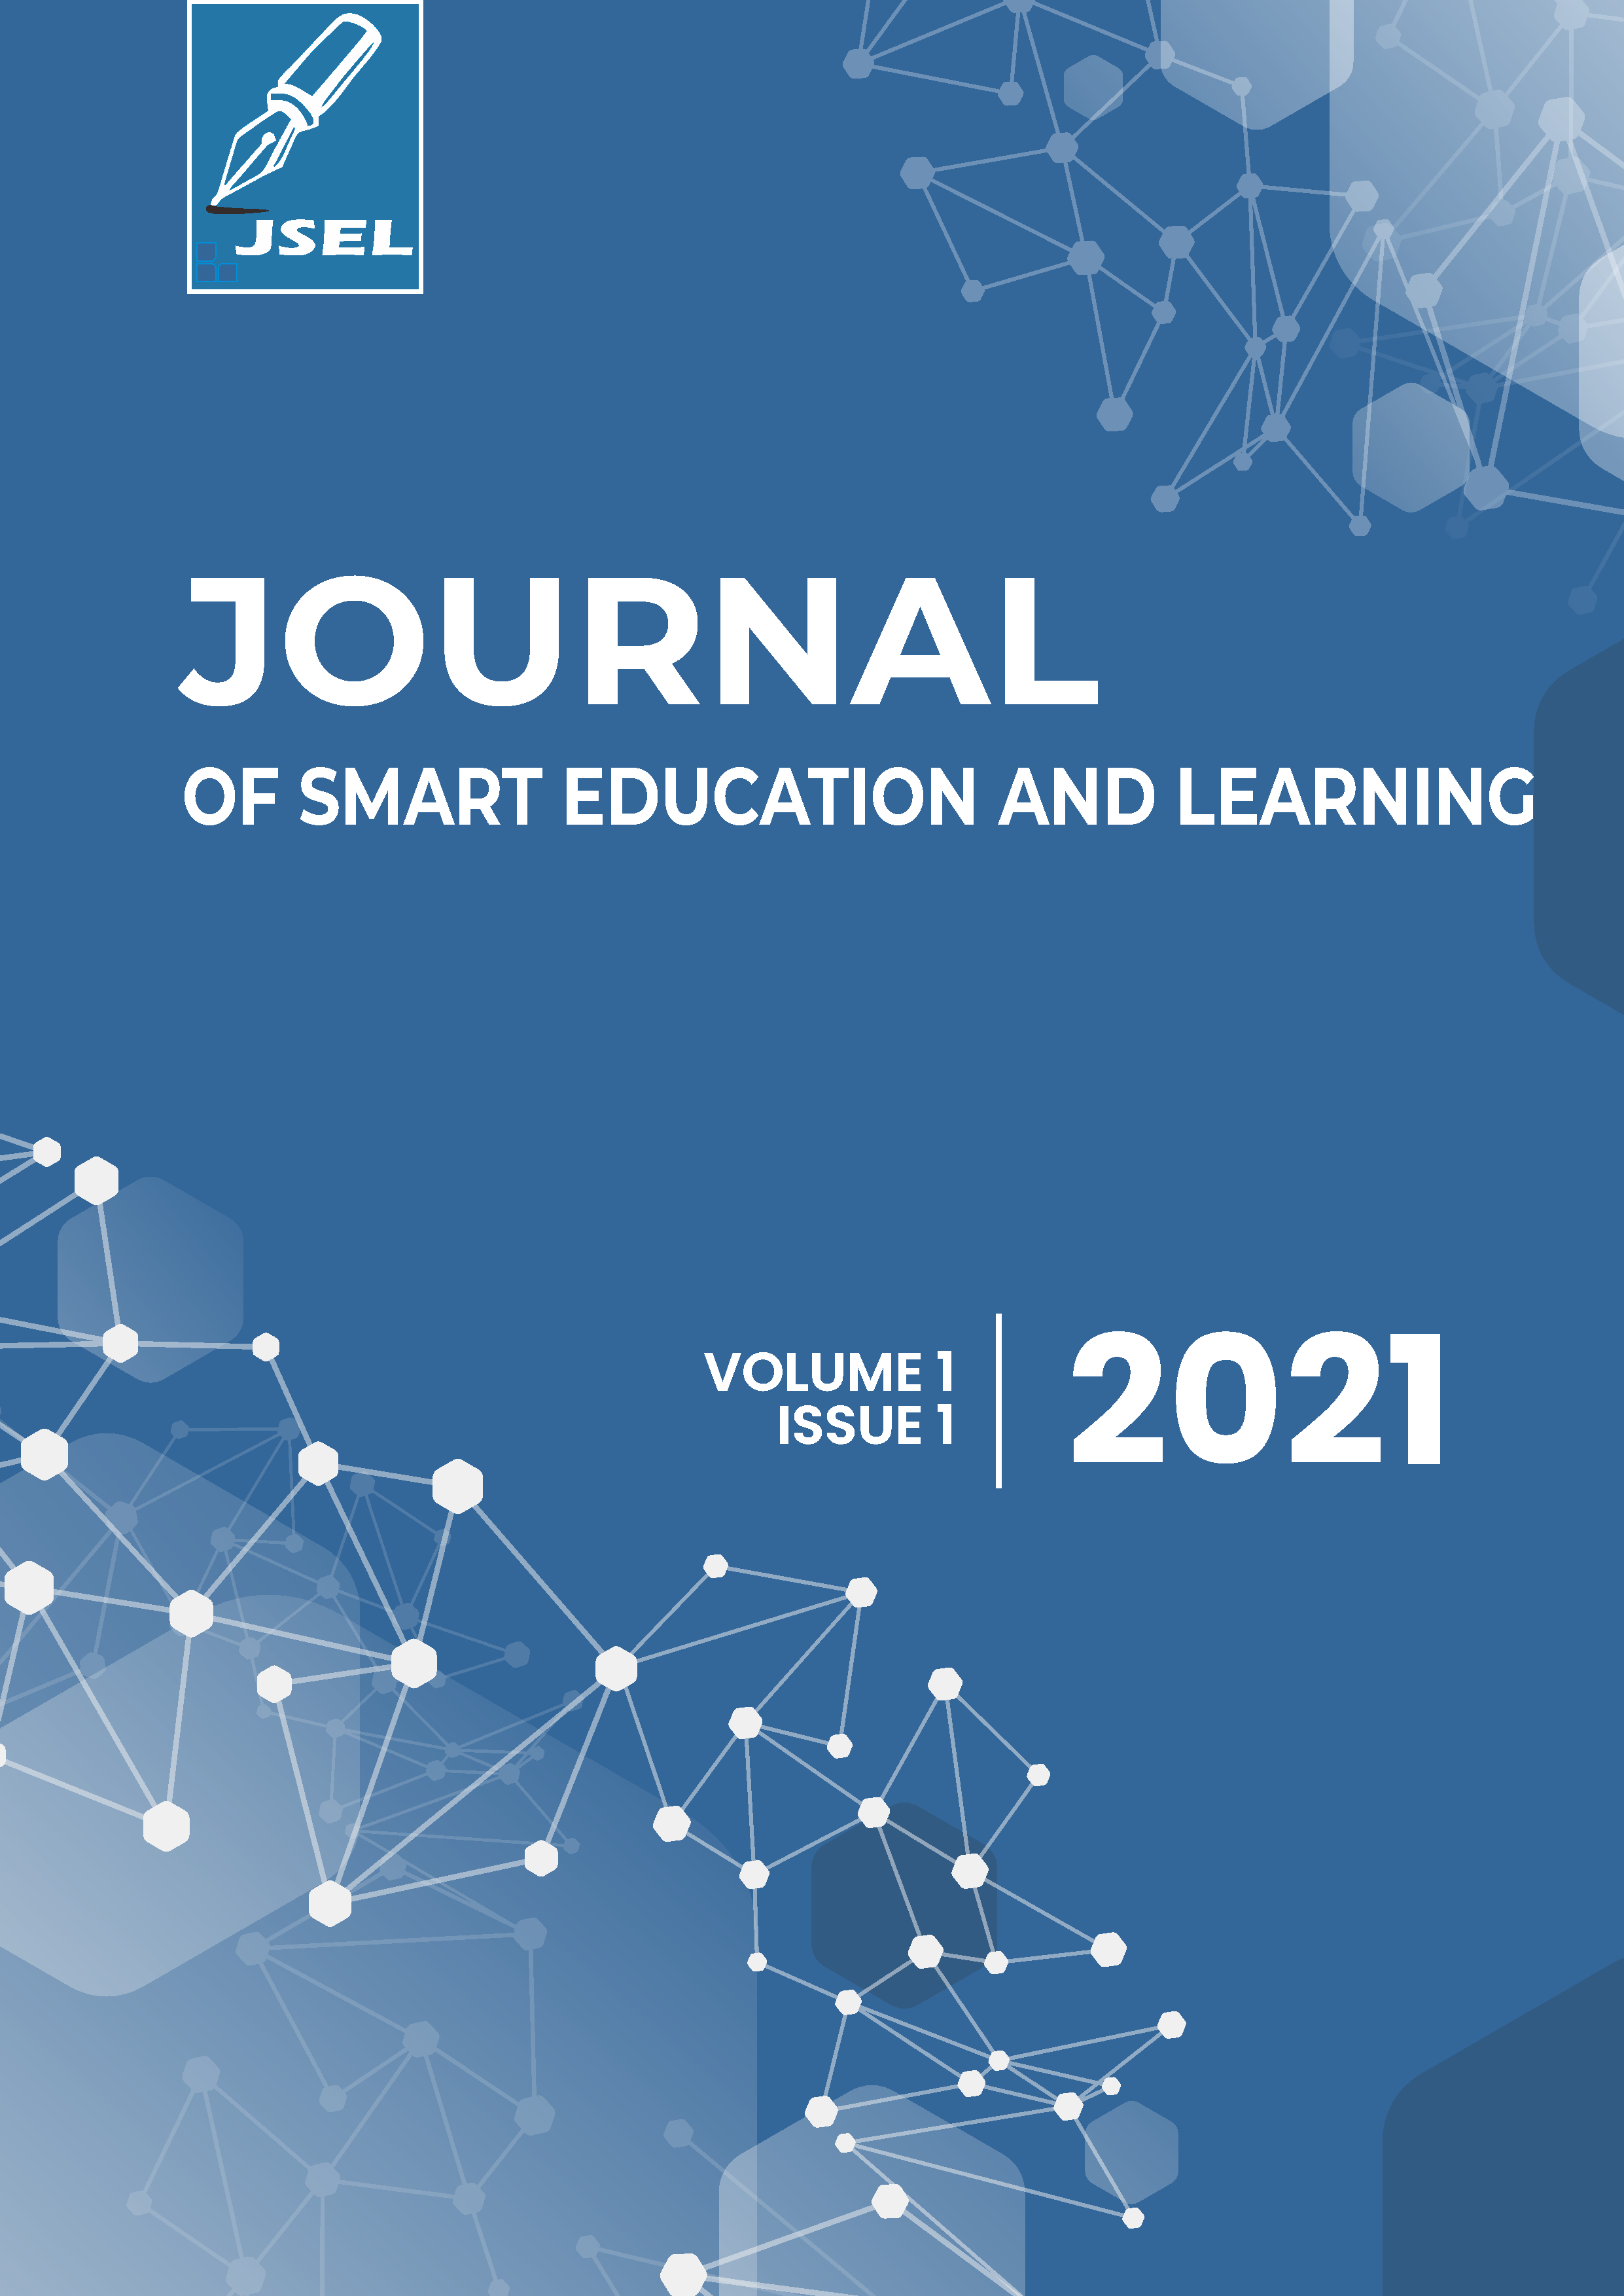 View Vol. 1 No. 1 (2021): Journal of Smart Education and Learning